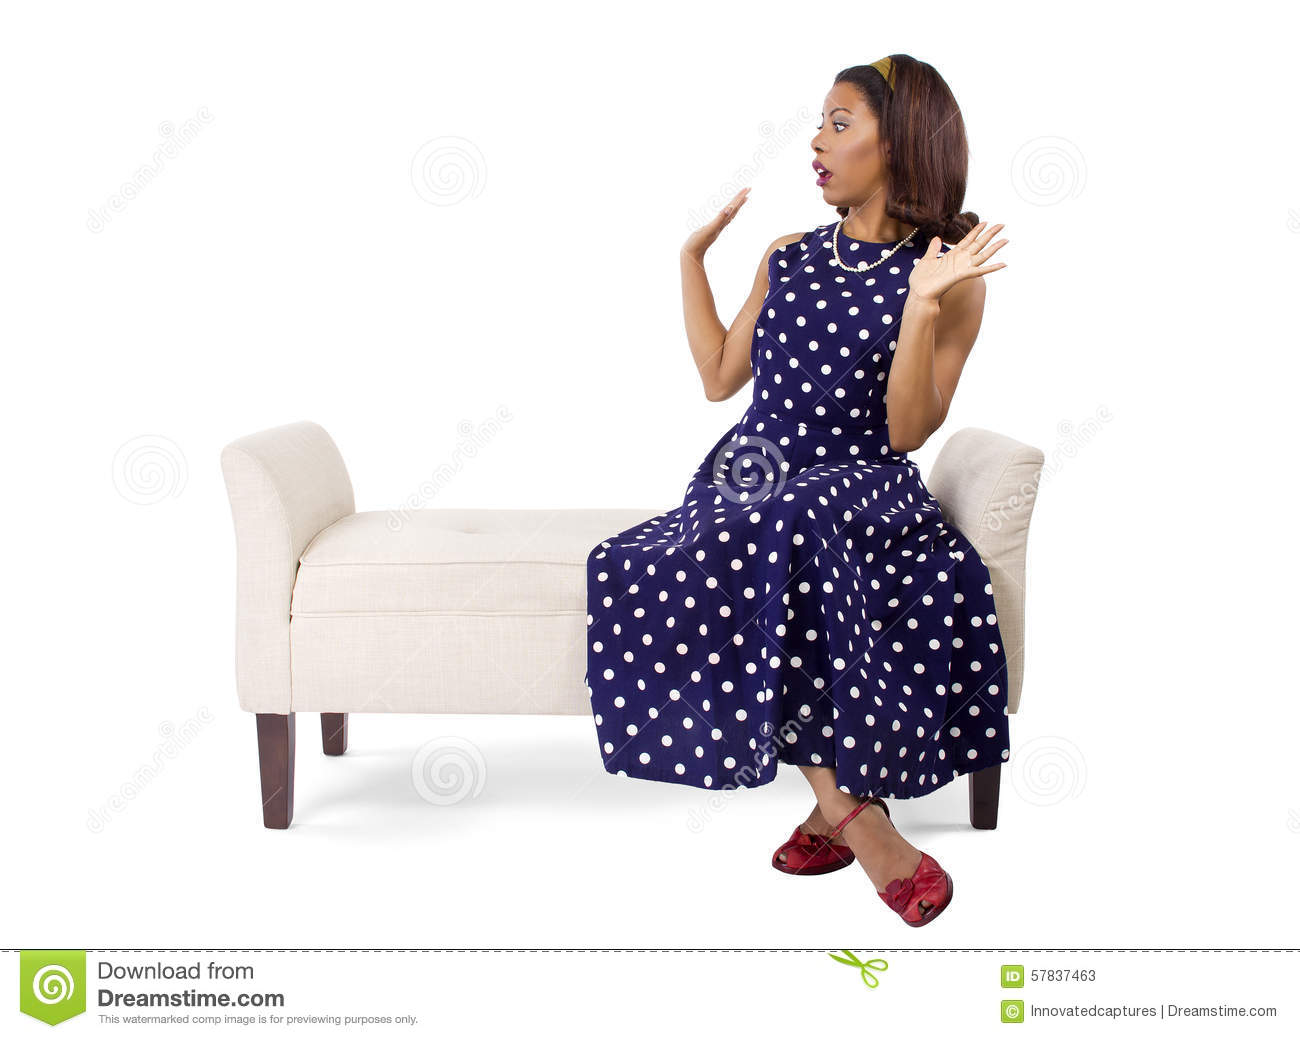 8376937b42 Woman wearing a blue polka dot dress on a traditional chaise furniture. The  model is isolated on a white background.